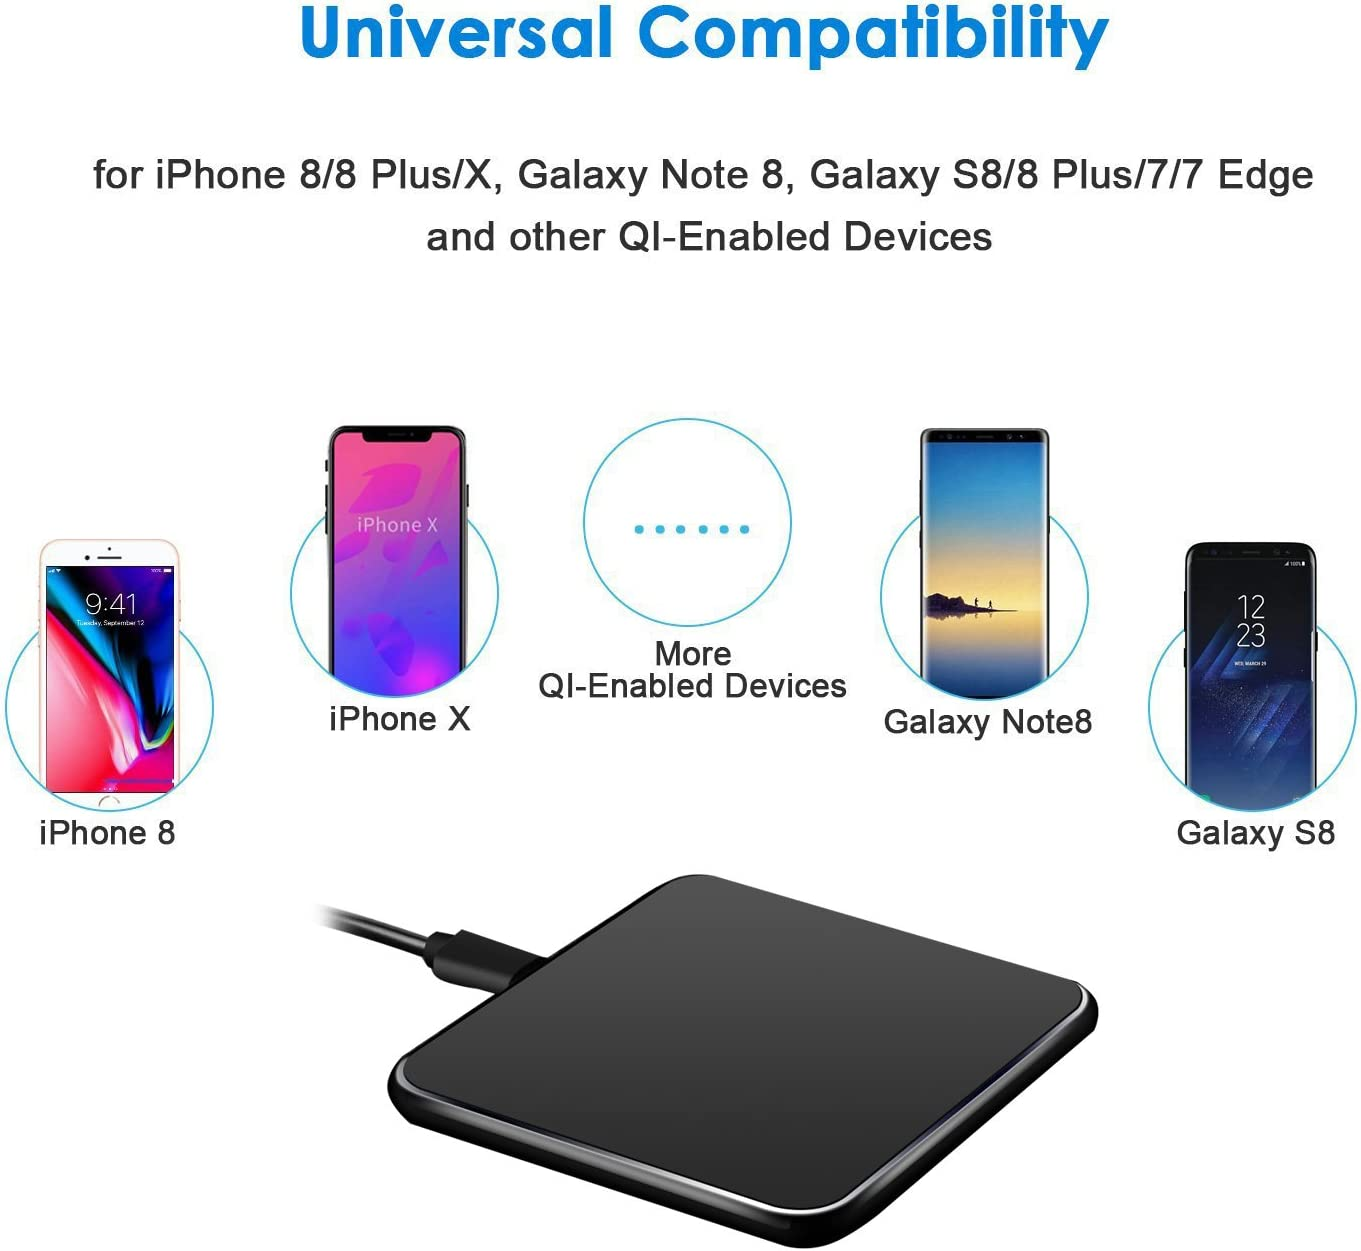 Provides Charging for Galaxy S8// S8+// S7 // S7 edge // S6 edge+,Note5 Wireless Charger,JCOOR Wireless Charger Charging Pad for iPhone 8//8 Plus iPhone X Nexus 5//6 // 7 and Other Devices